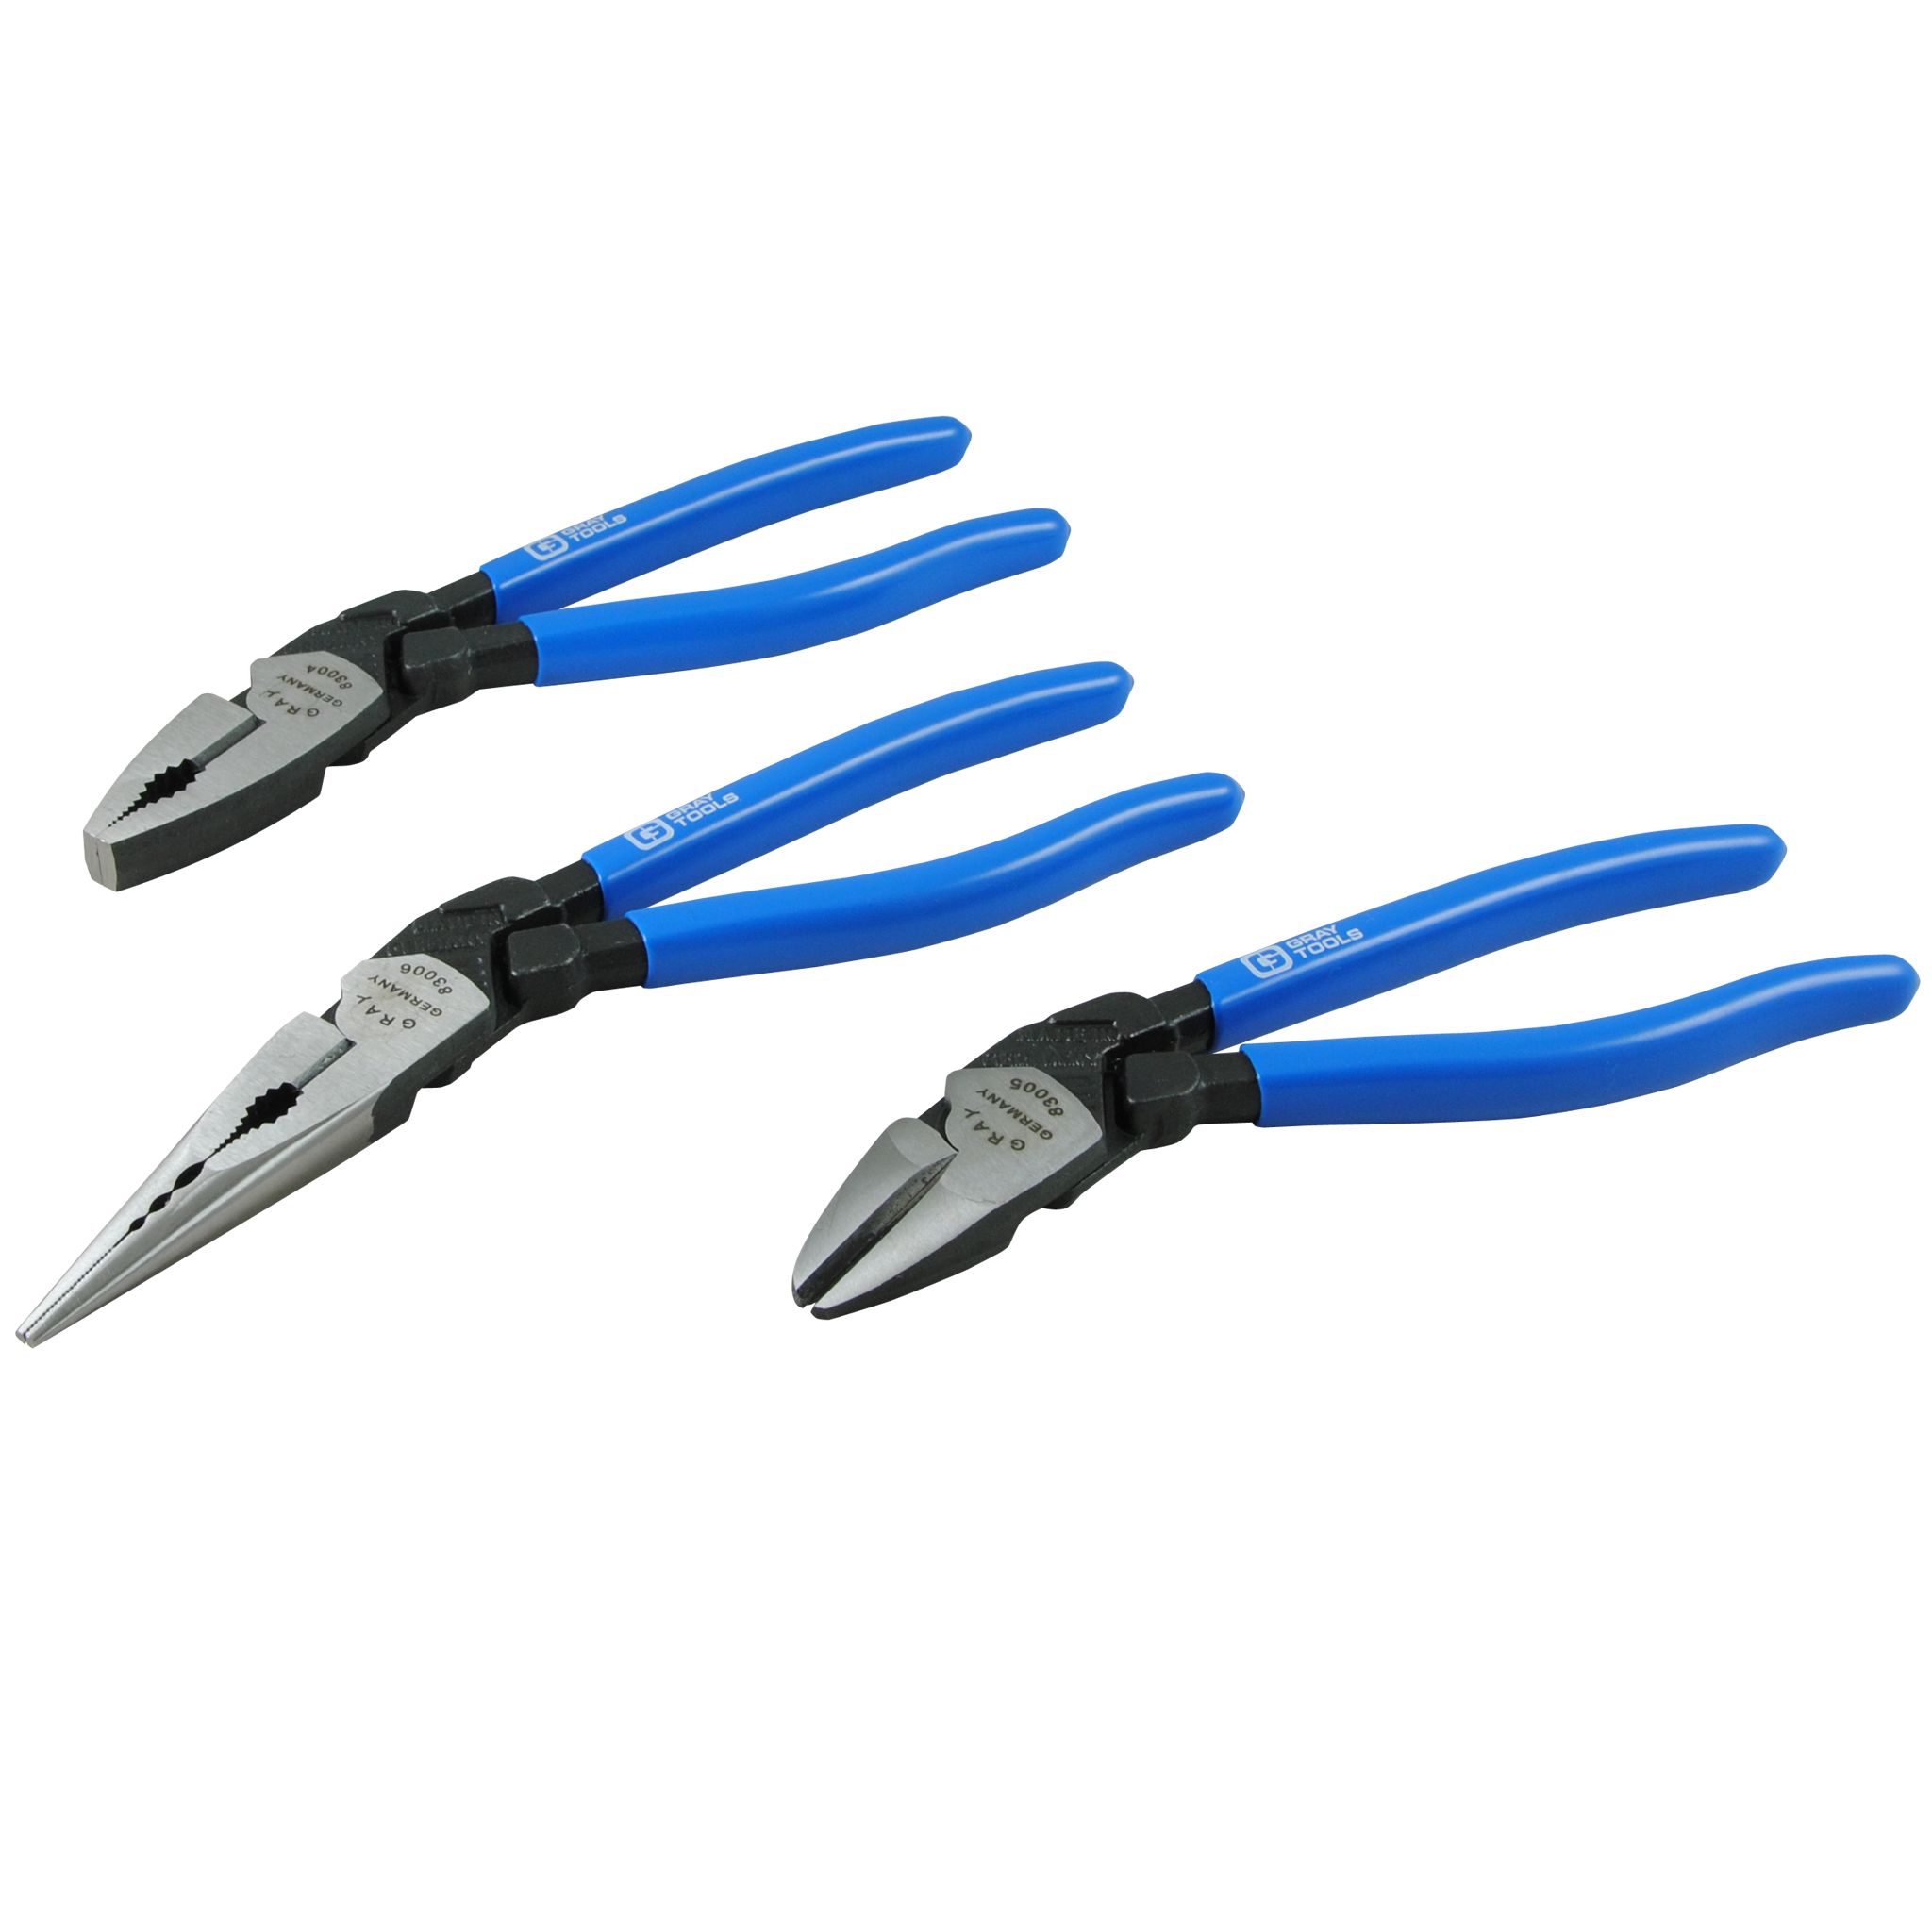 3 Piece Ergo-Handle Pliers Set